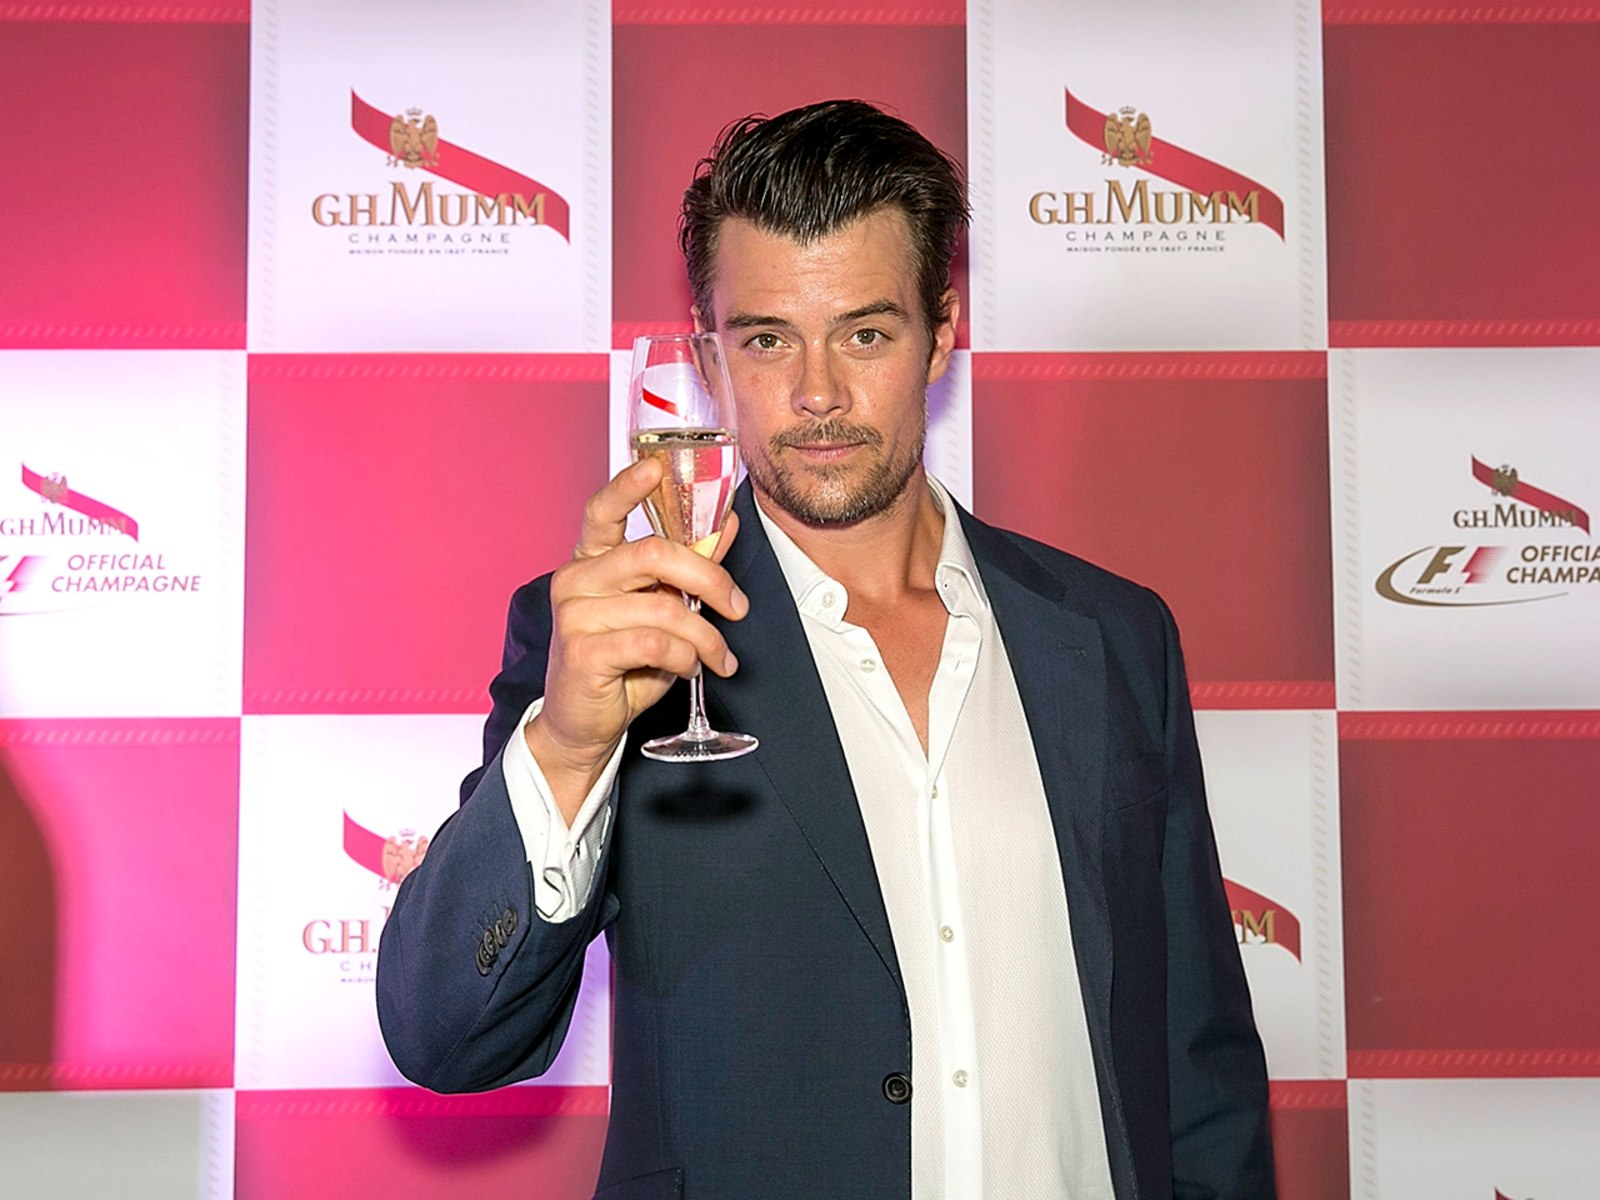 Image: G.H. Mumm Hosts The Art Of Celebration - Formula 1 With Josh Duhamel